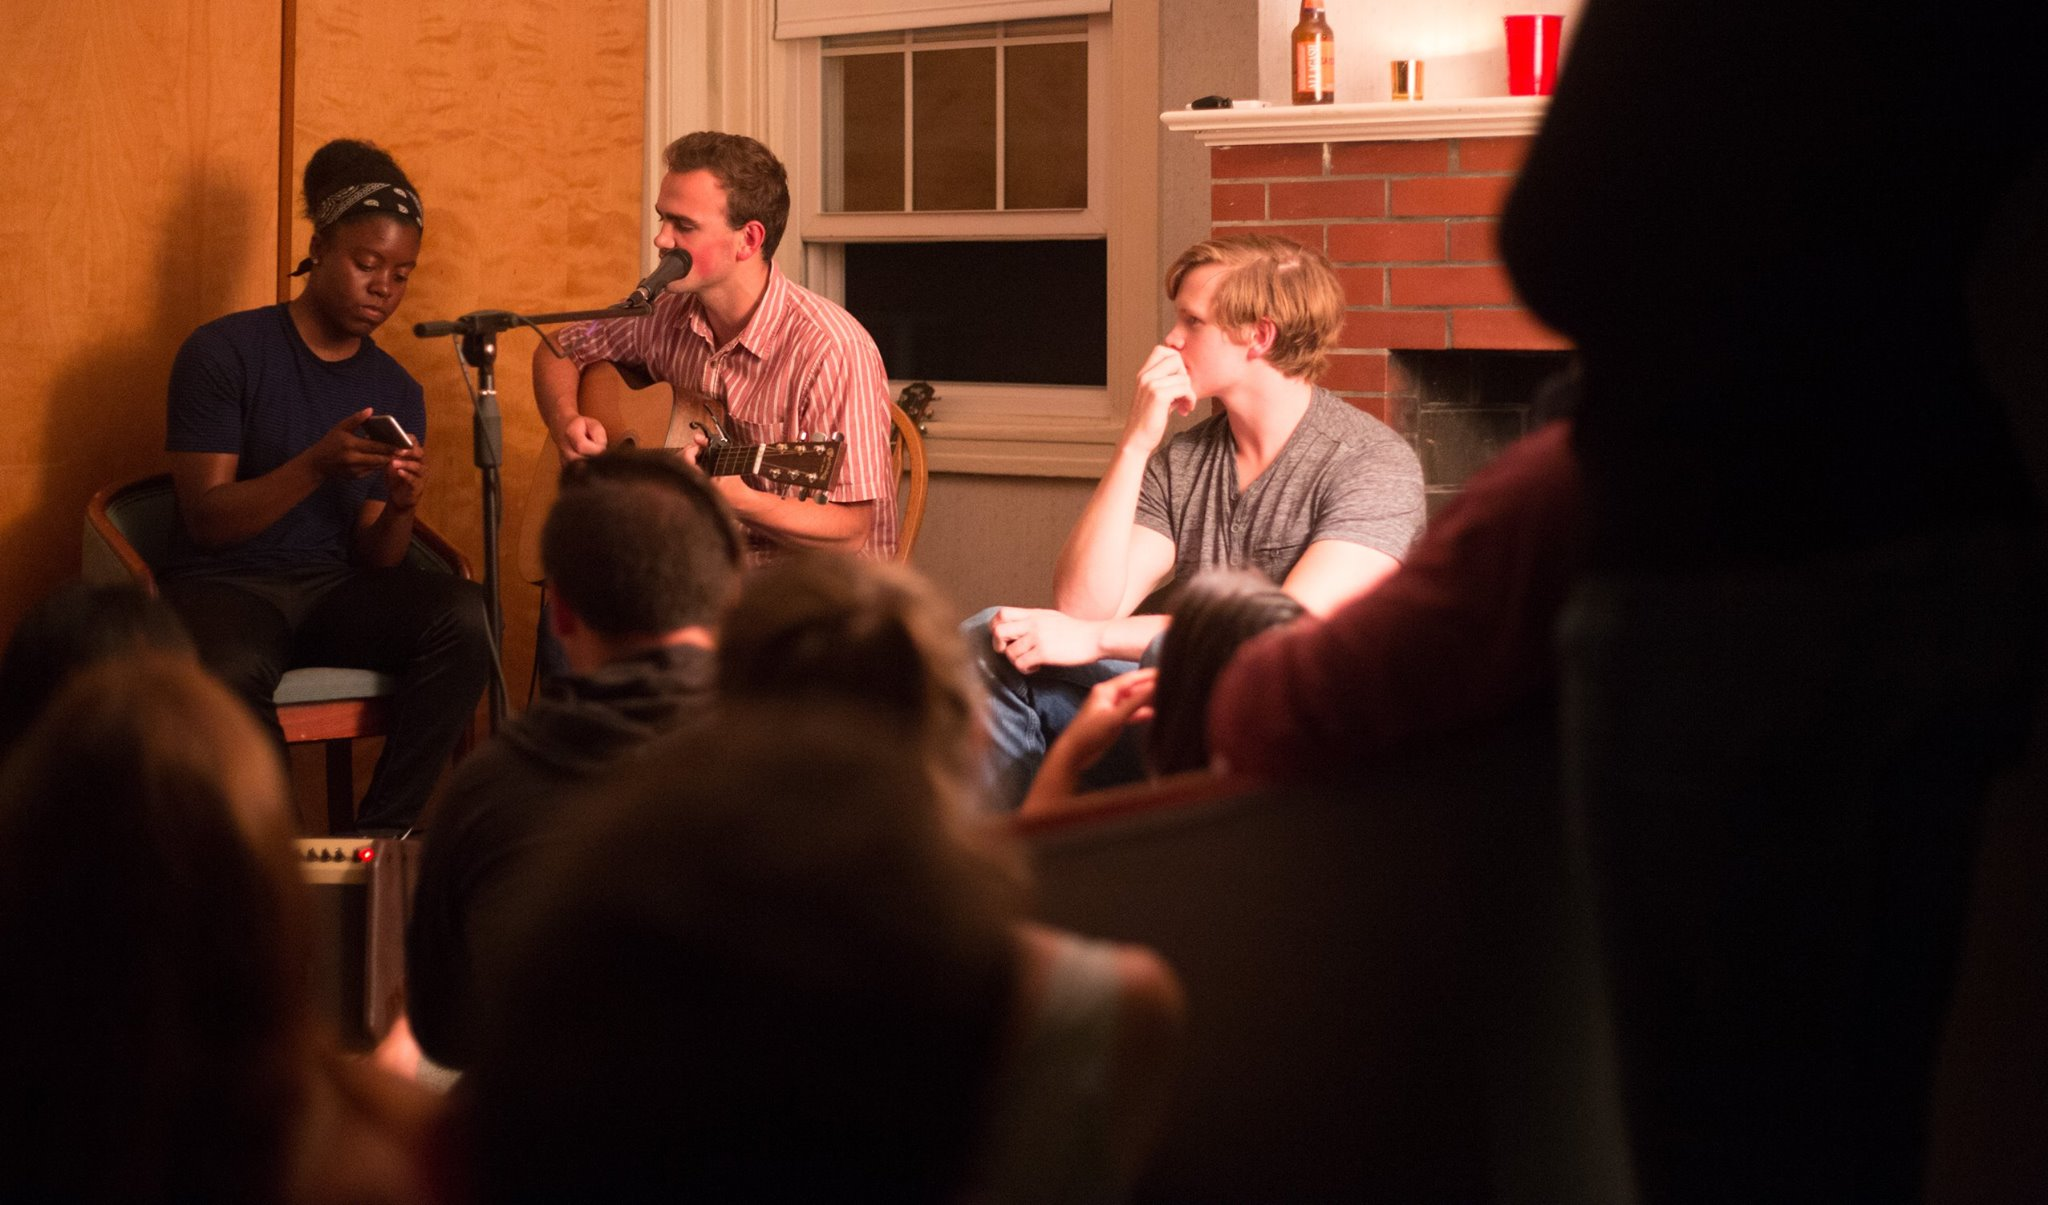 VFA intern-hosted Open Mic Night, photo by Shea Parikh